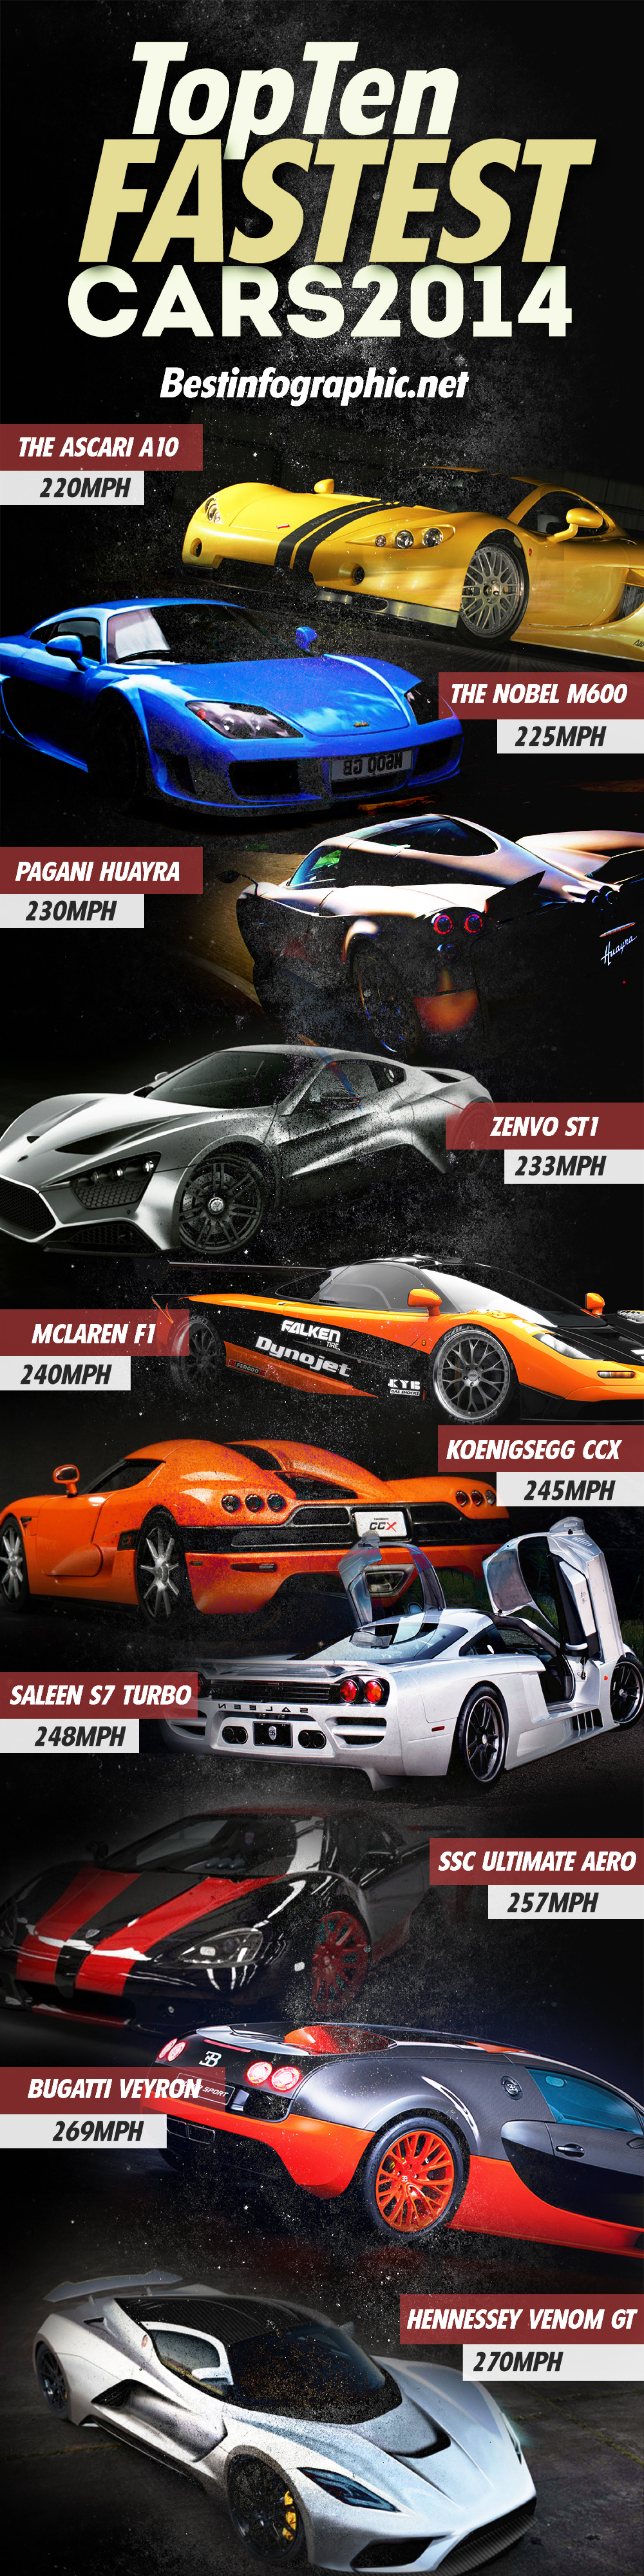 Top Ten Fastest Cars in the World 2014 Infographic